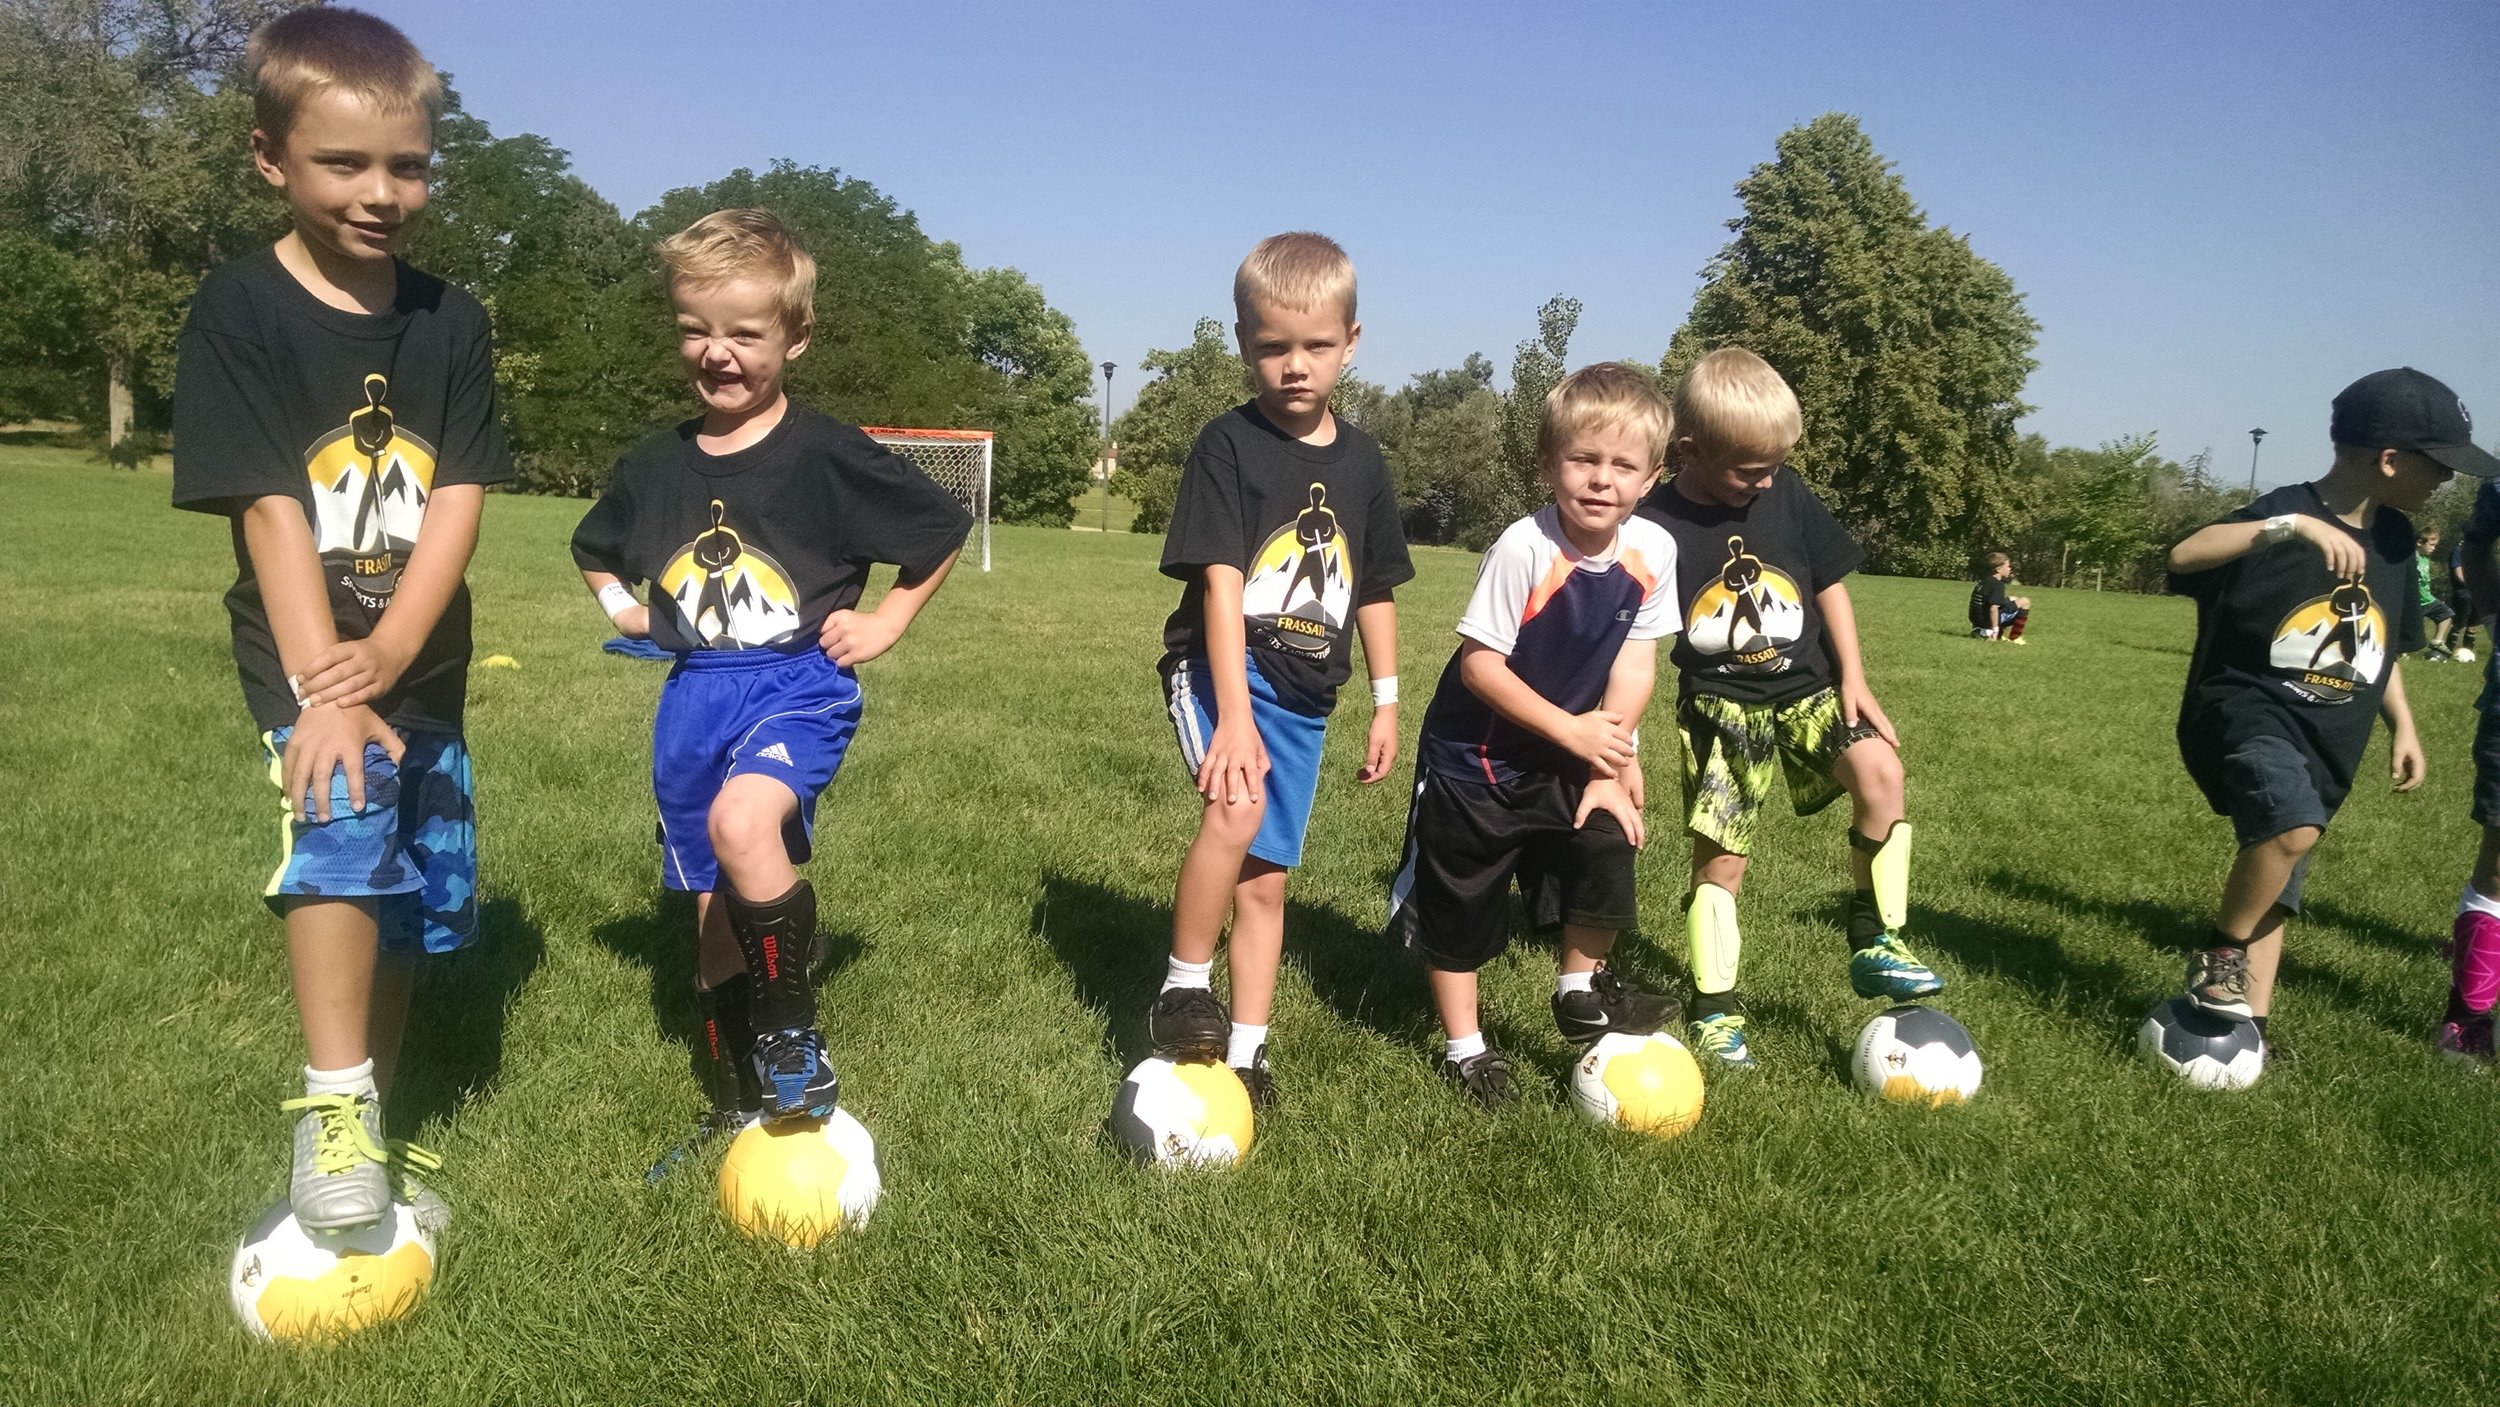 Summer Camps - Frassati summer camps challenge boys to take both their athletic skills and souls